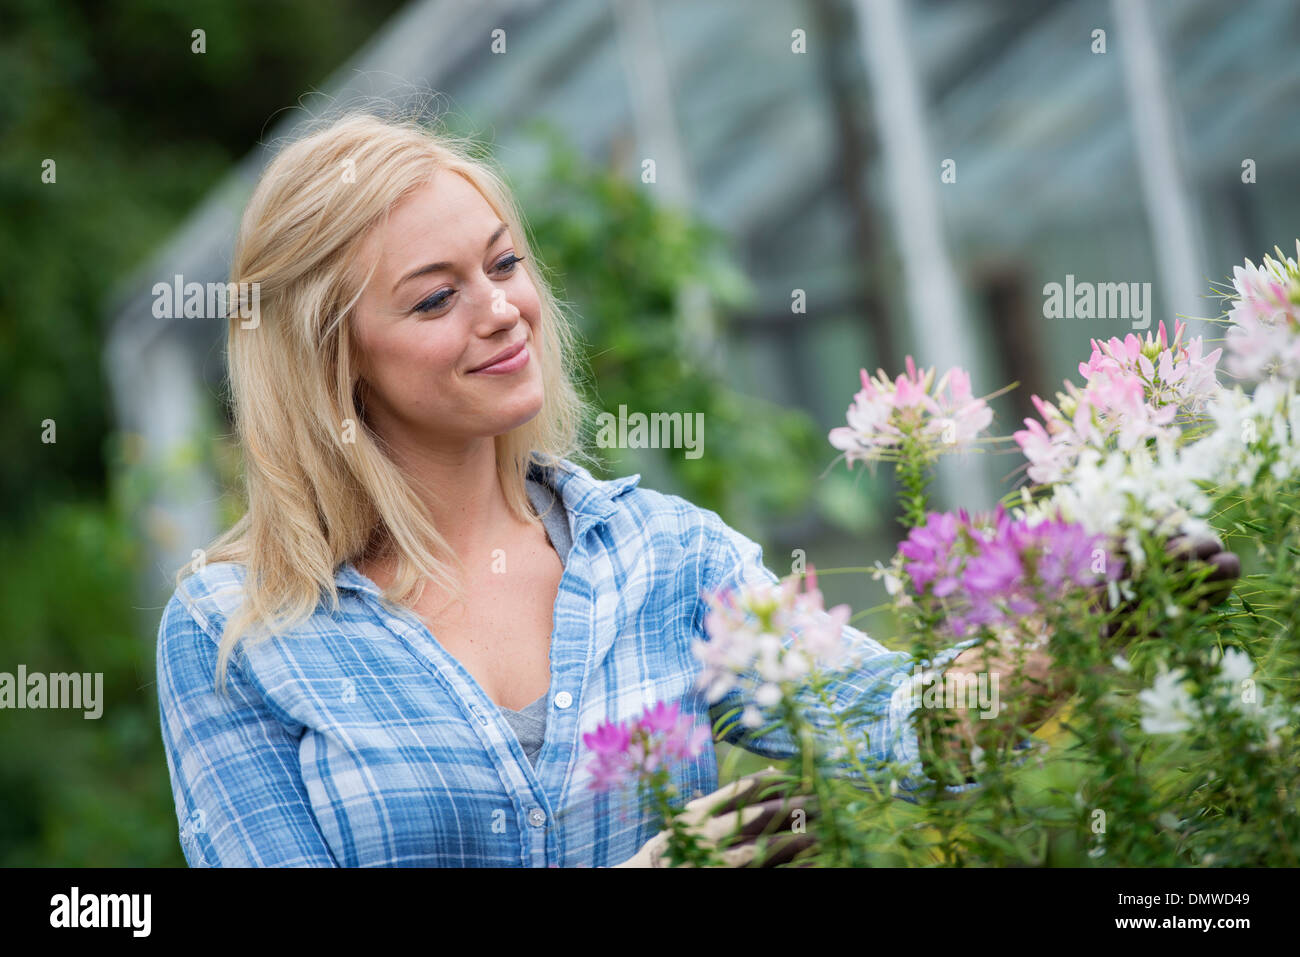 An organic flower plant nursery. A woman working. - Stock Image